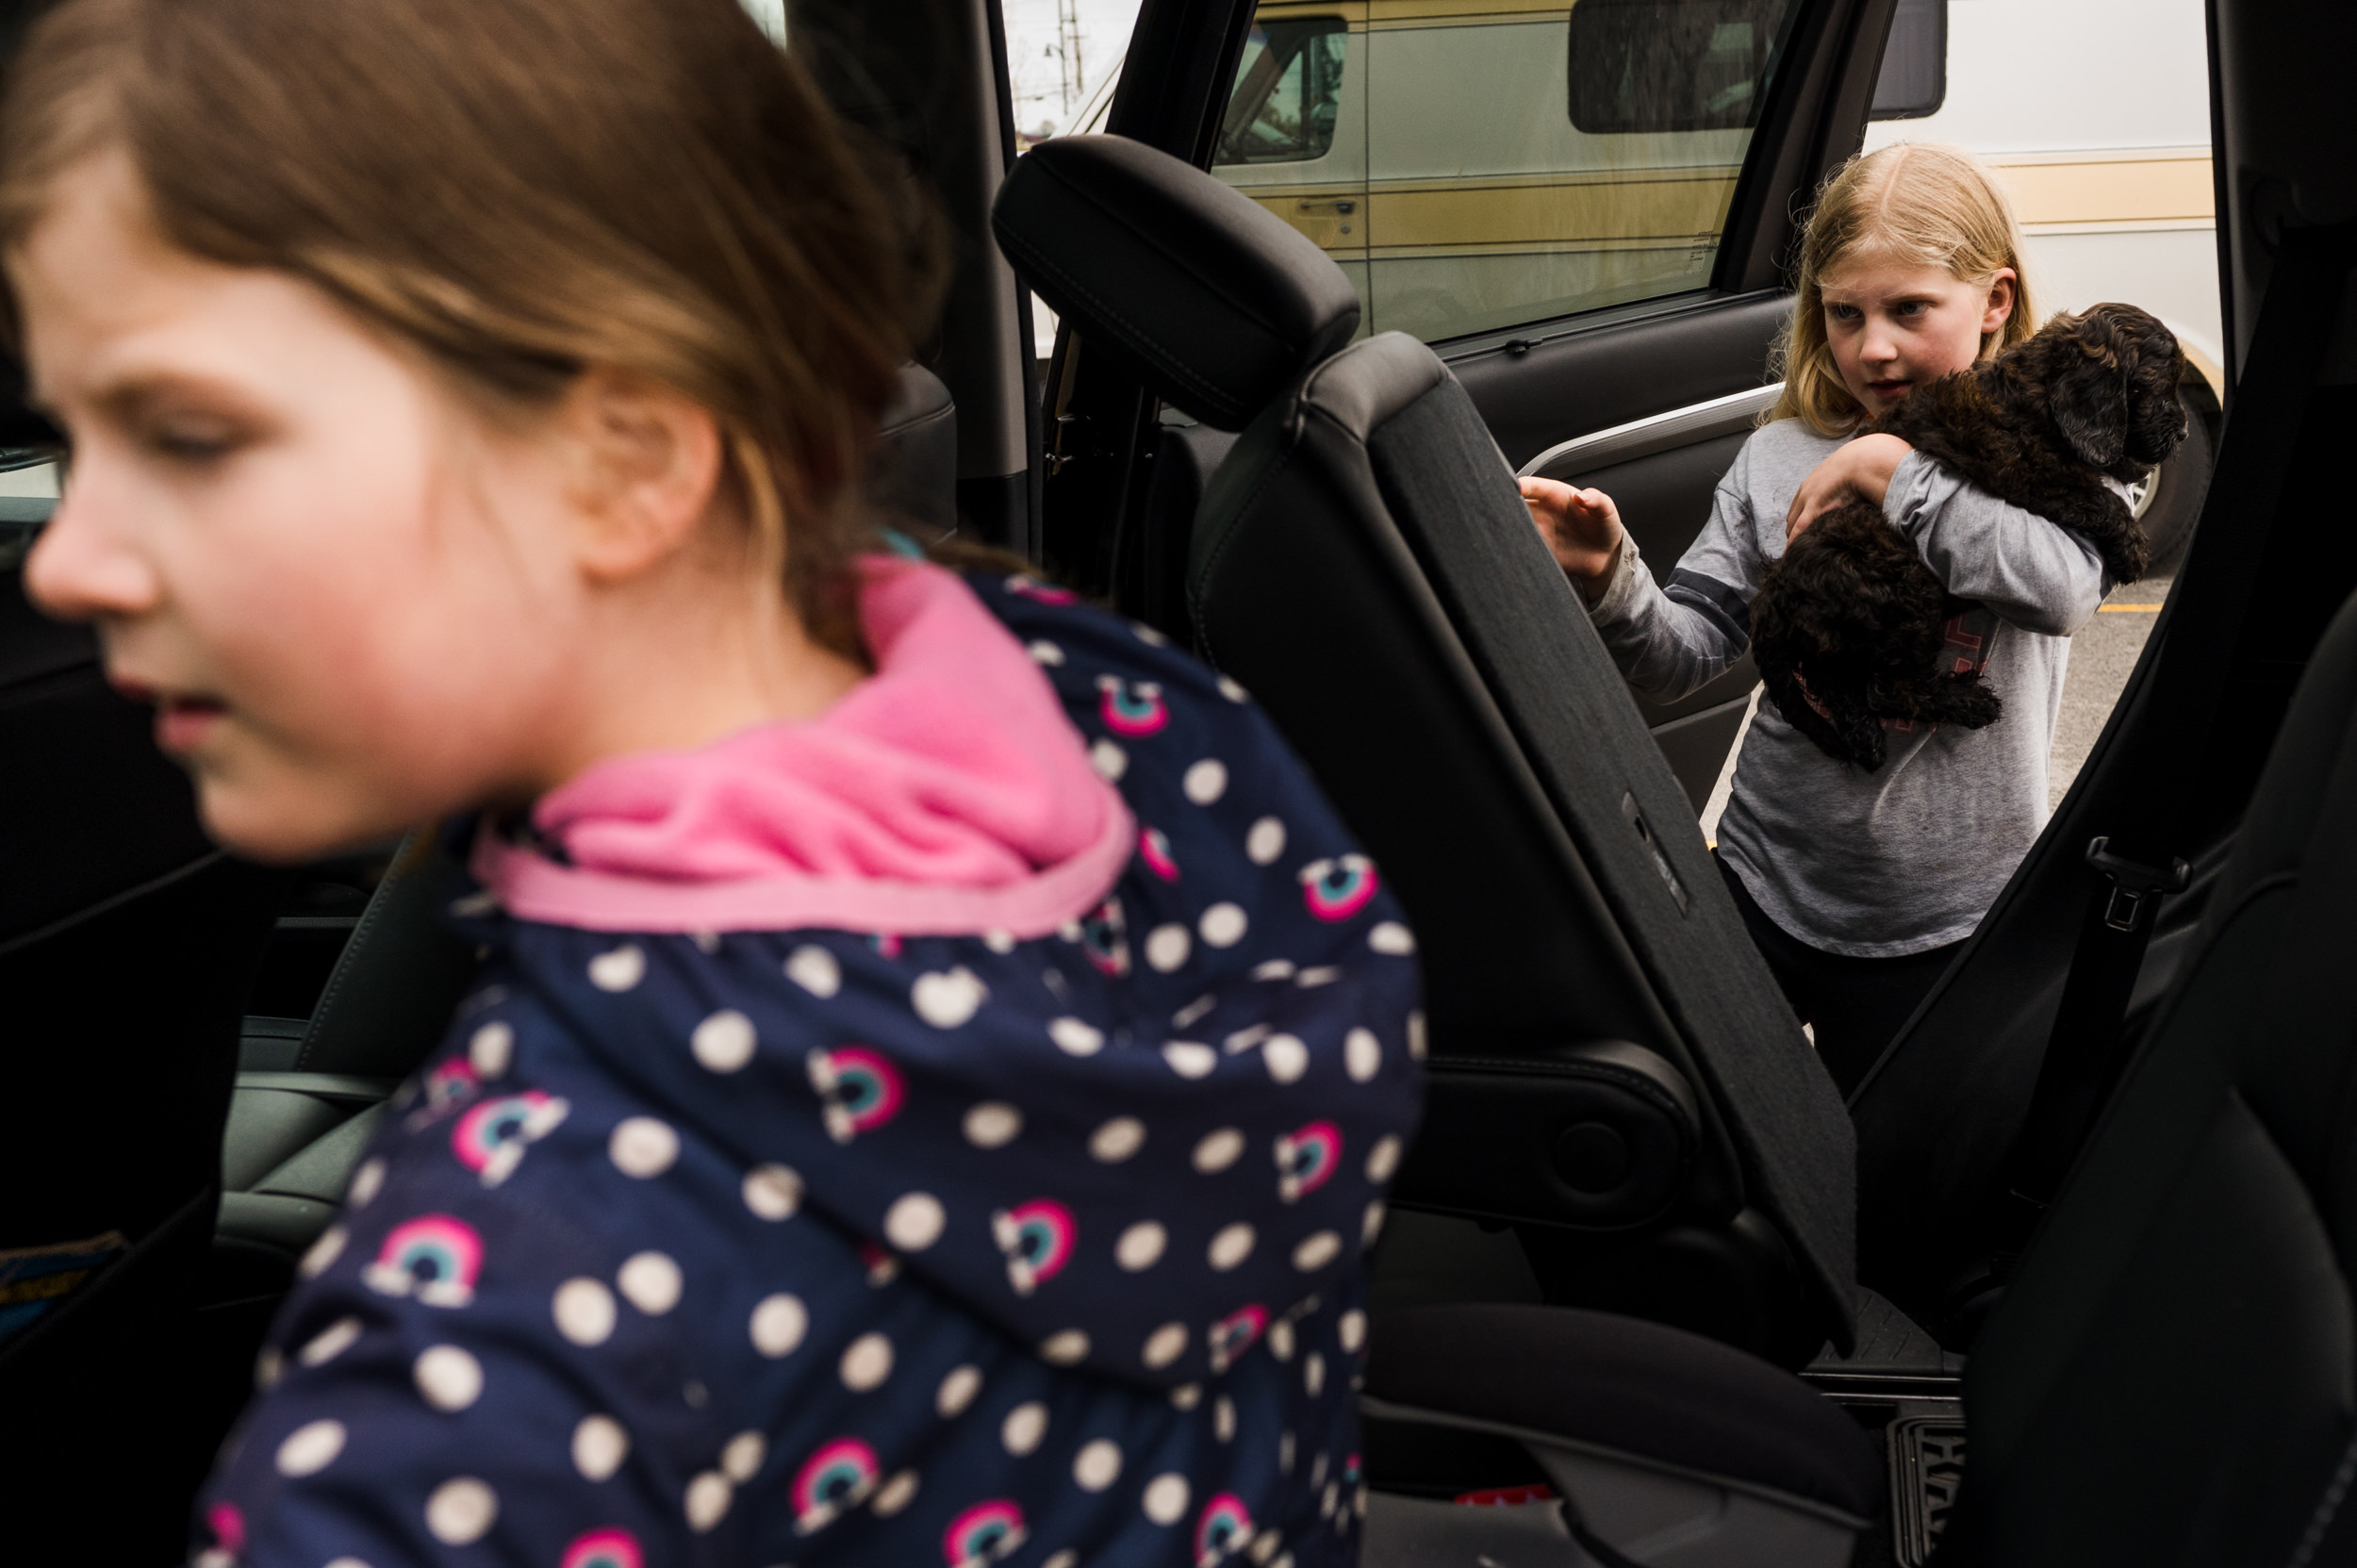 a girl carrying her new puppy into the car while her younger sister gets into her car seat.